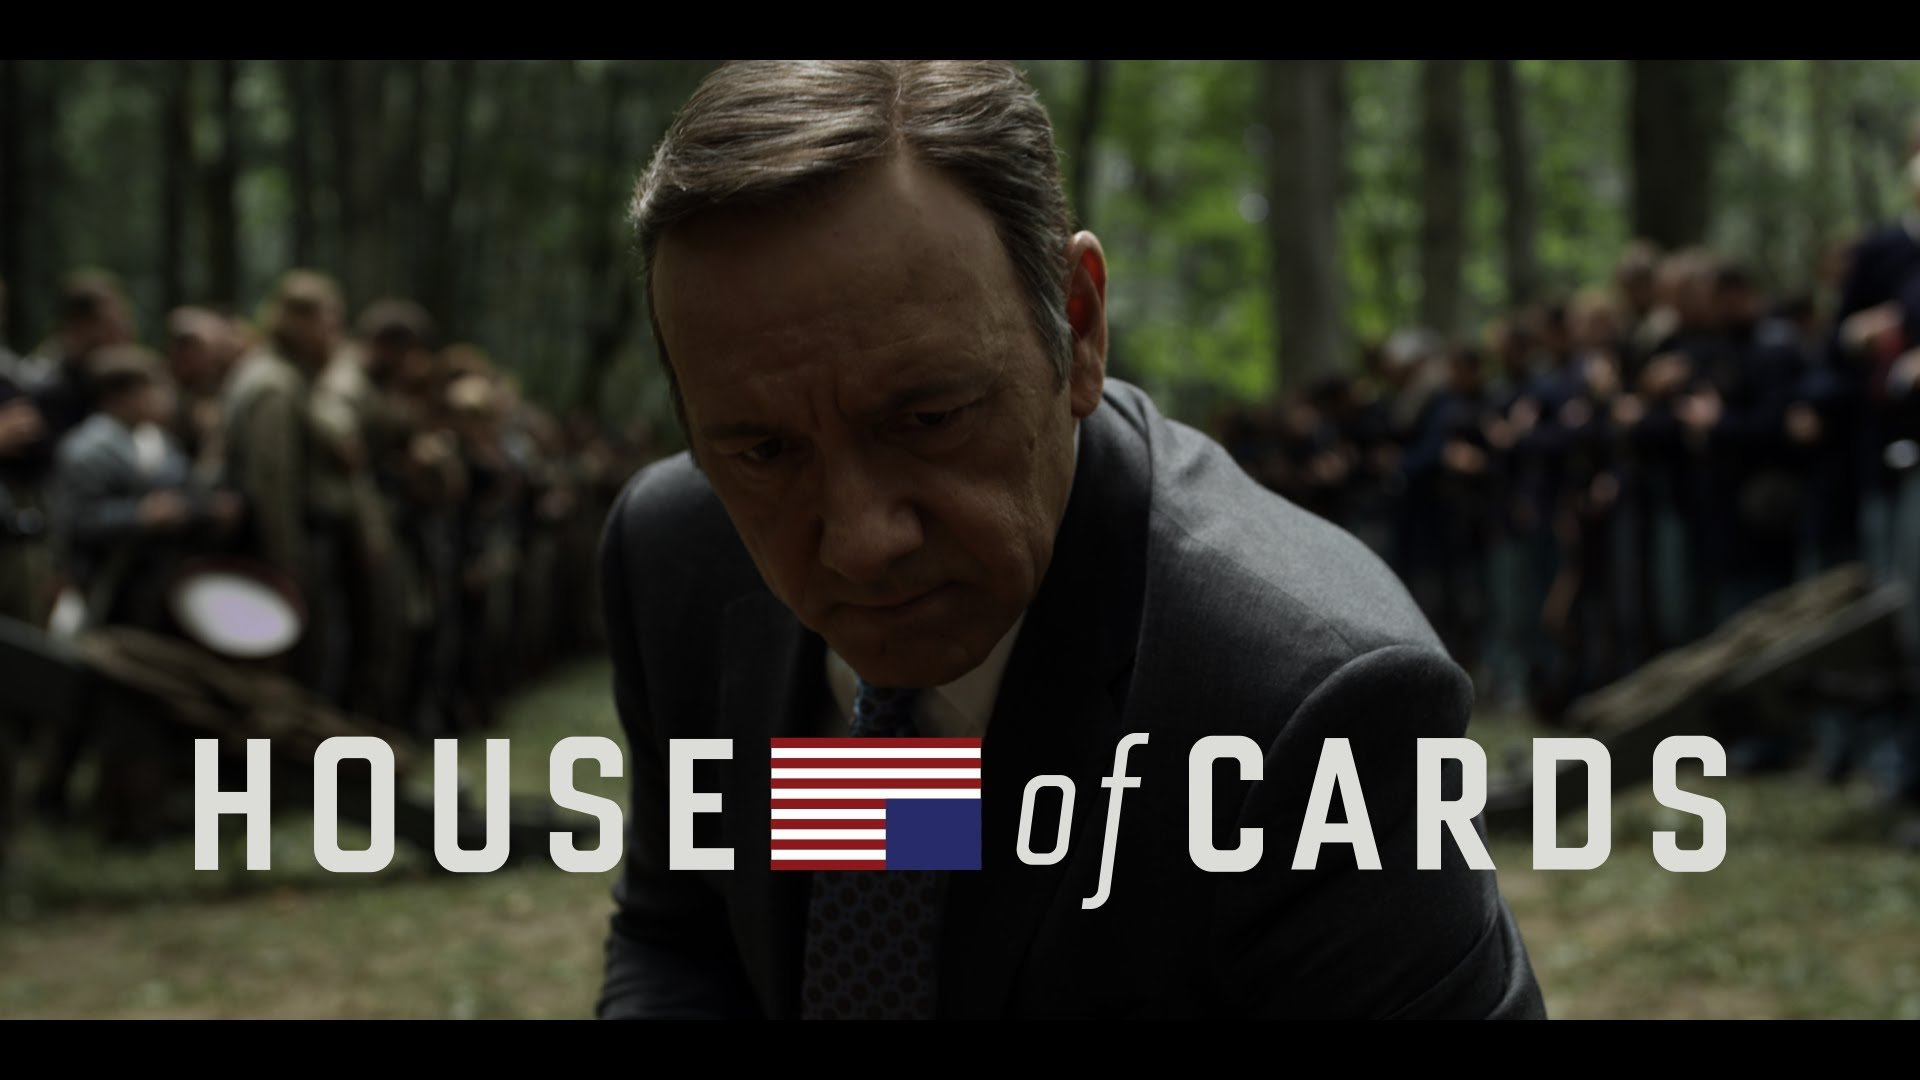 High resolution House Of Cards full hd wallpaper ID:185596 for PC